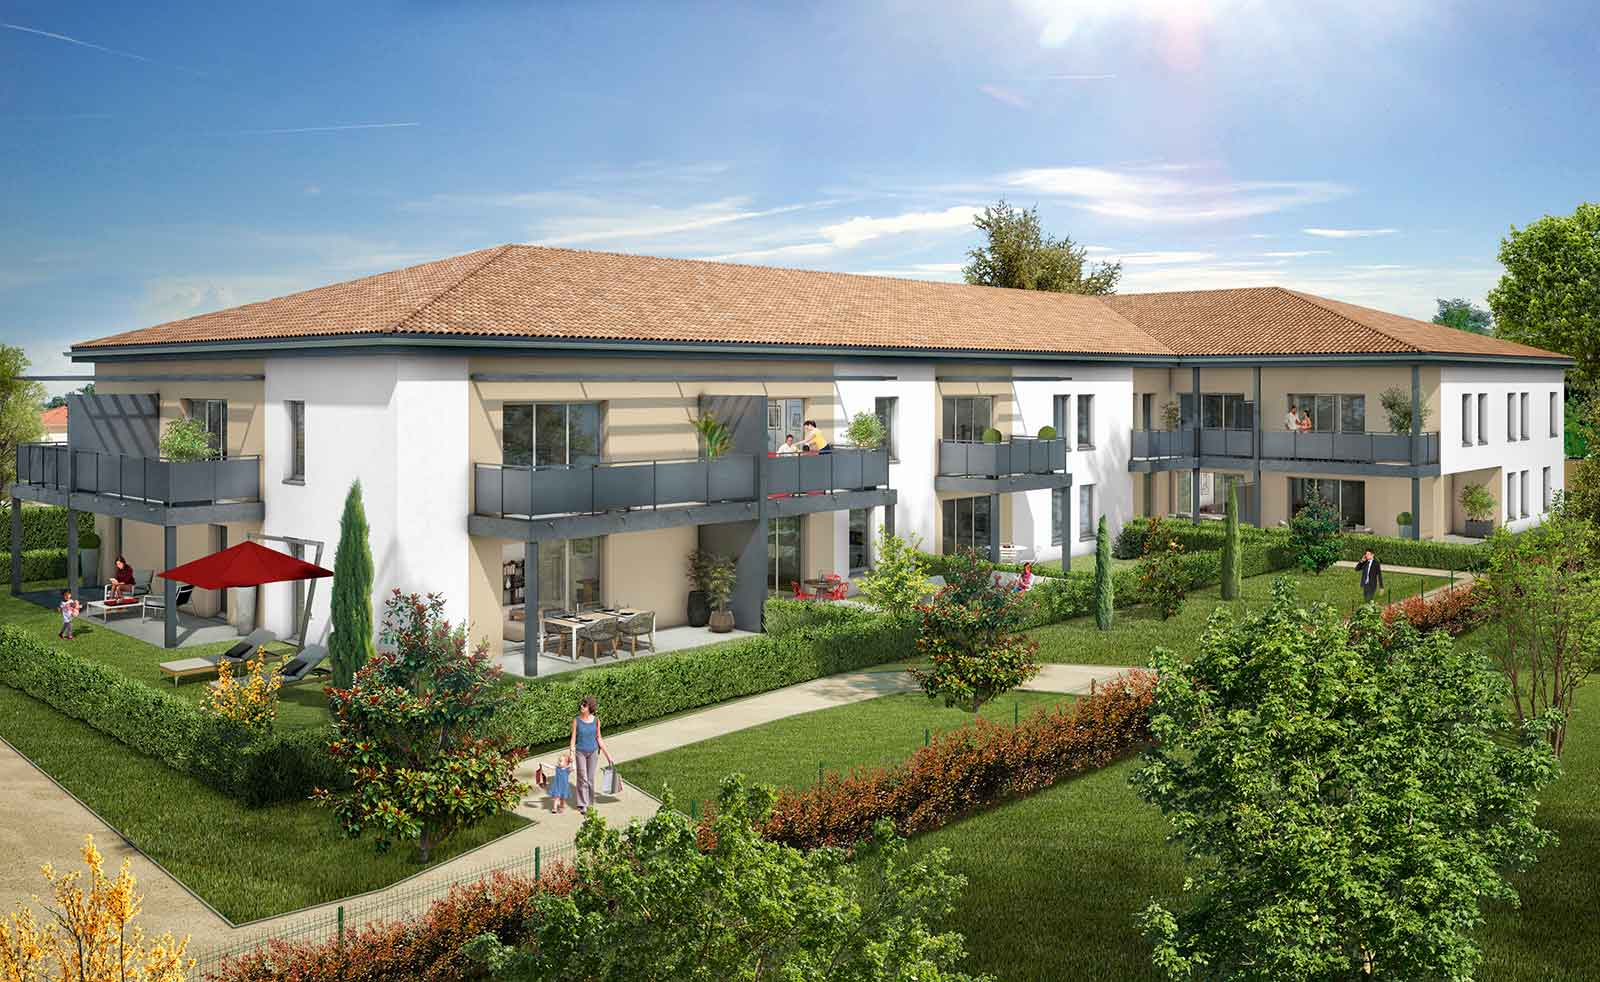 R sidence galice immobilier neuf escalquens carrere for Residence immobilier